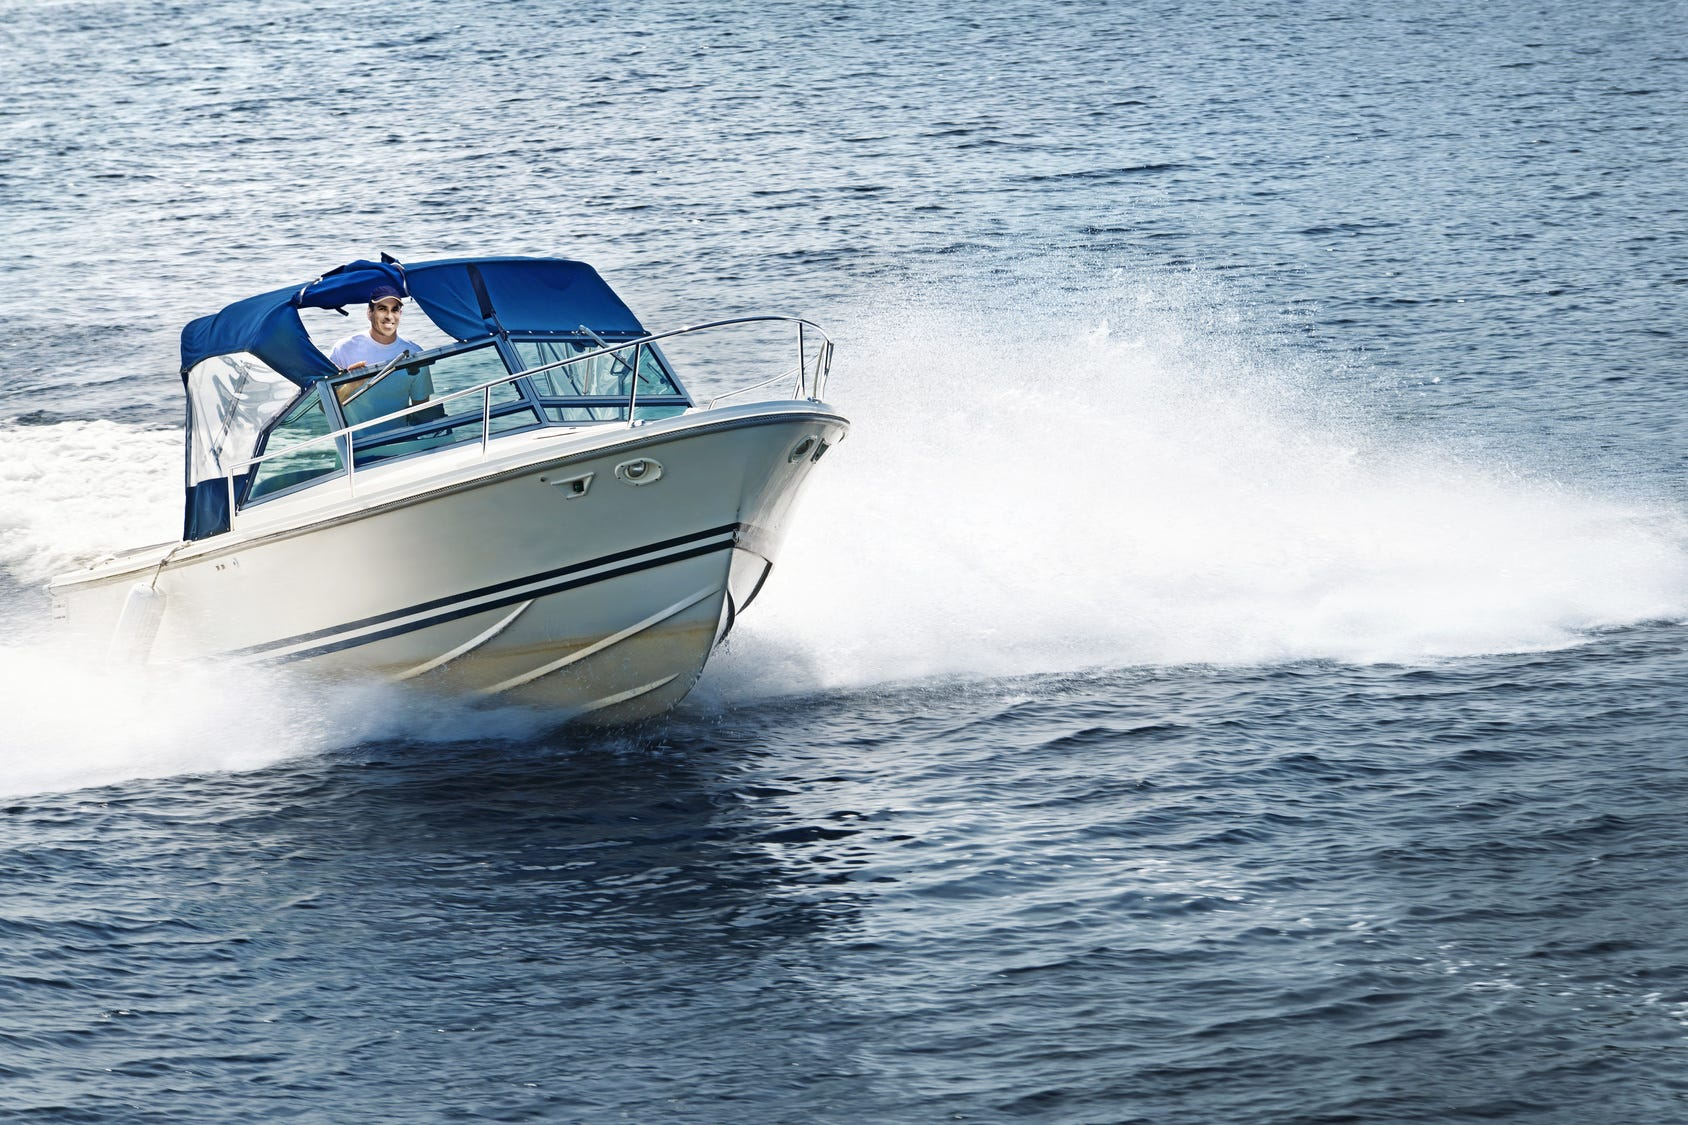 13 Boating Do's and Don'ts for Spring